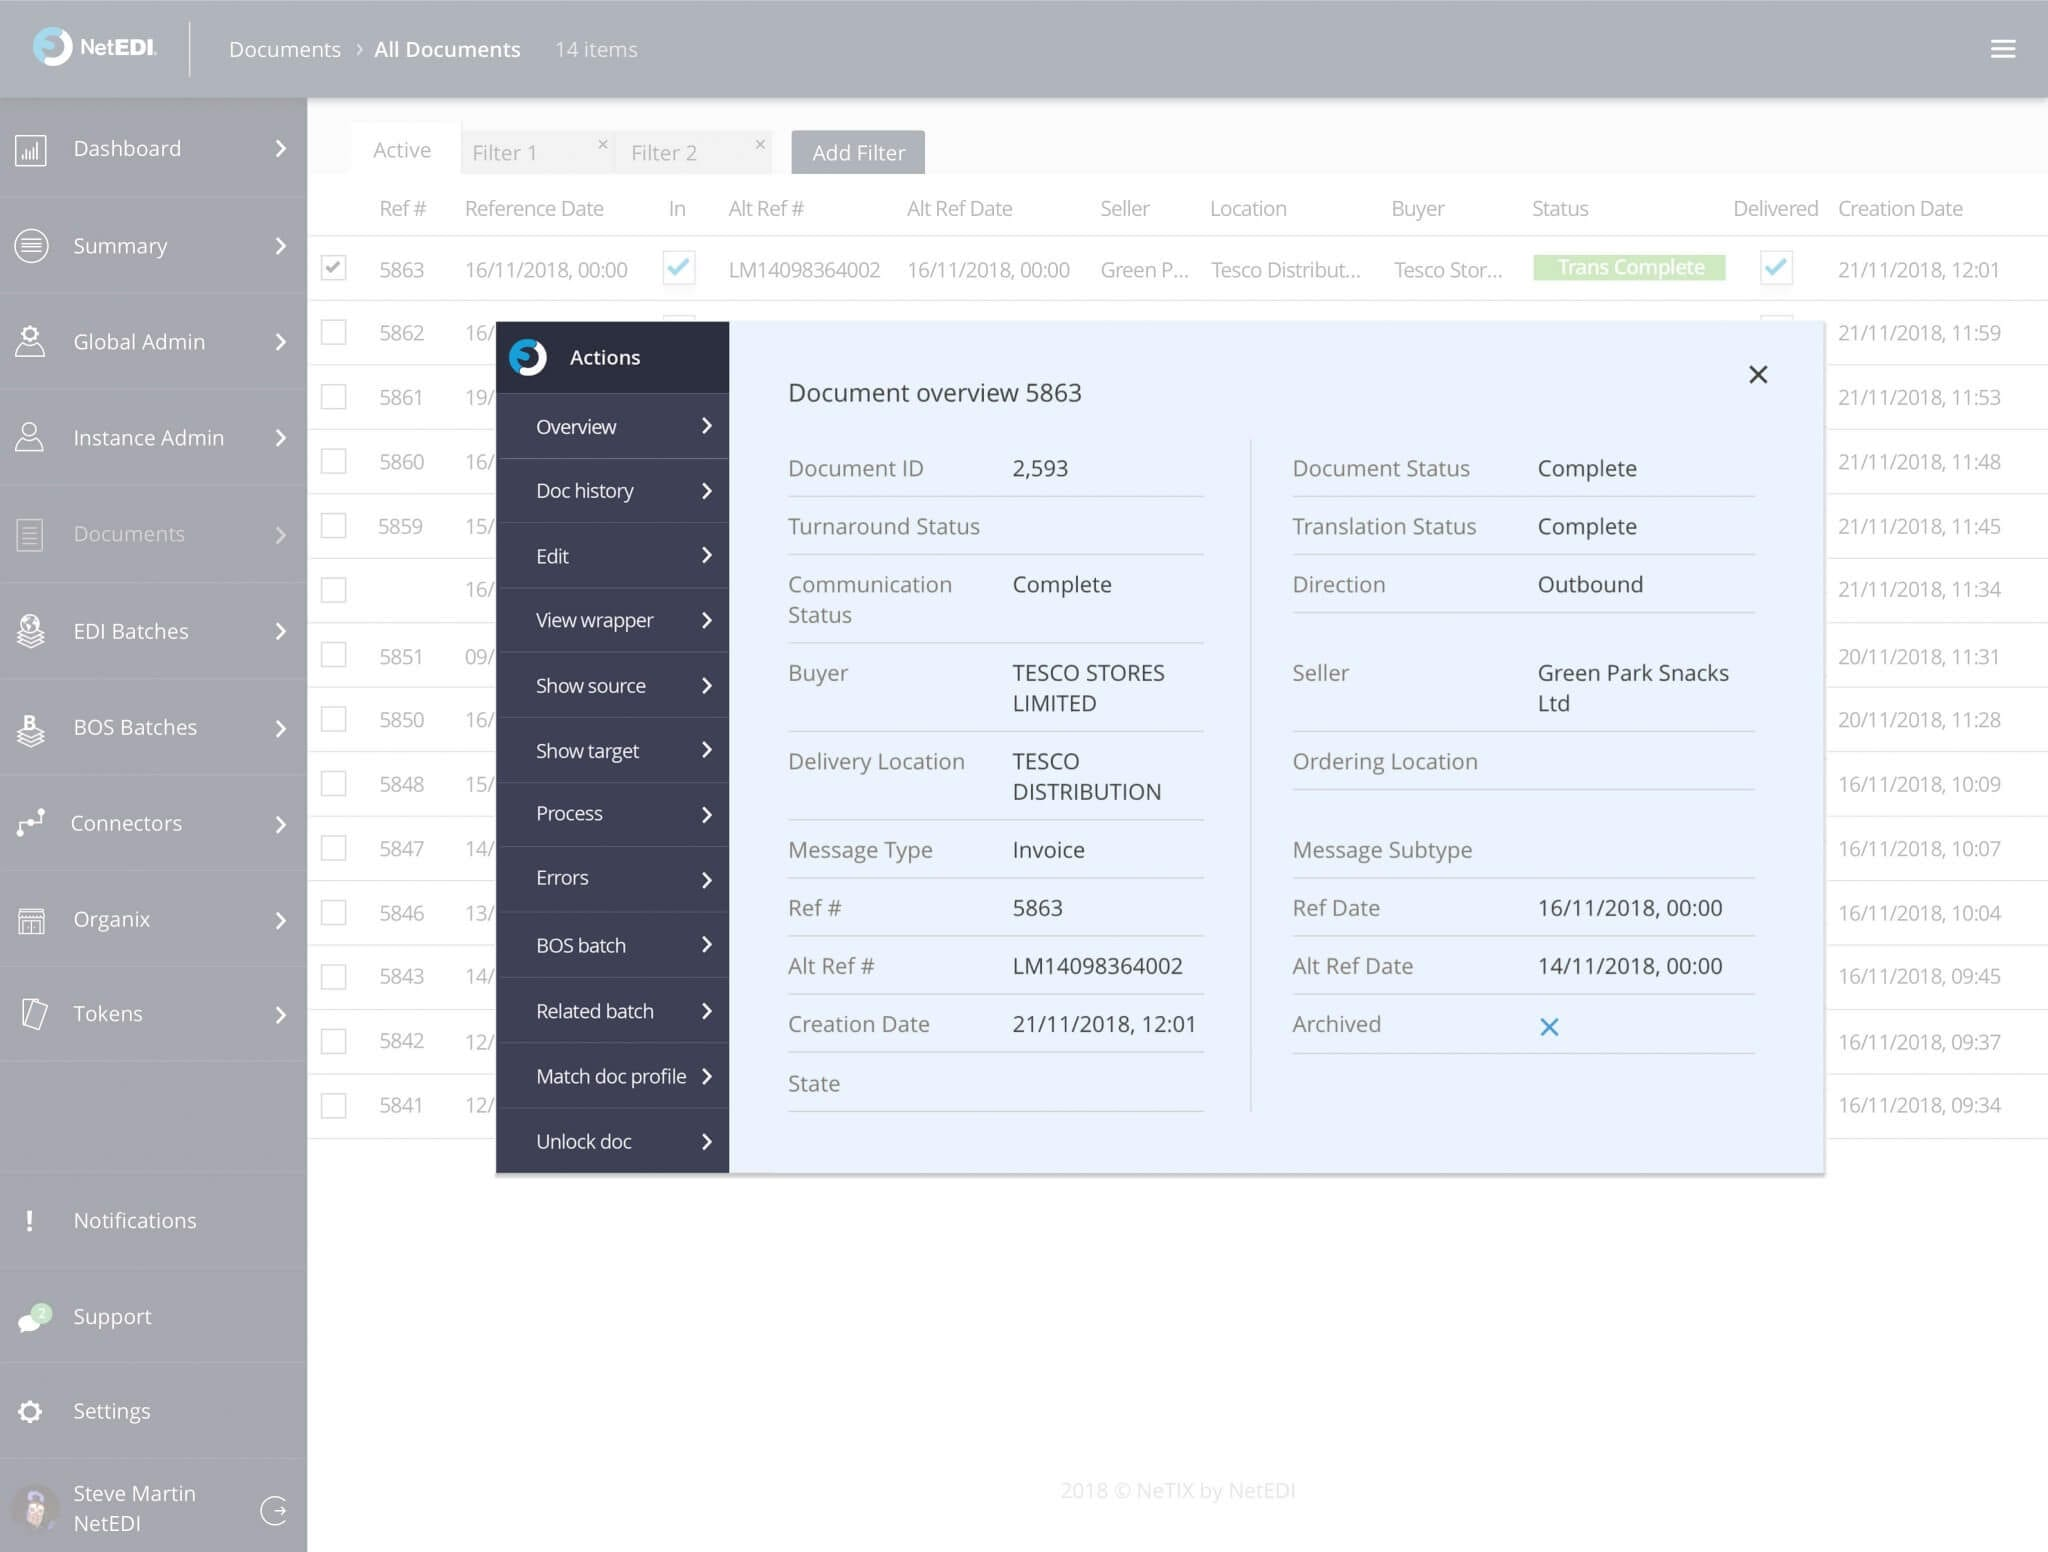 NetEDI Dashboard Screenshot